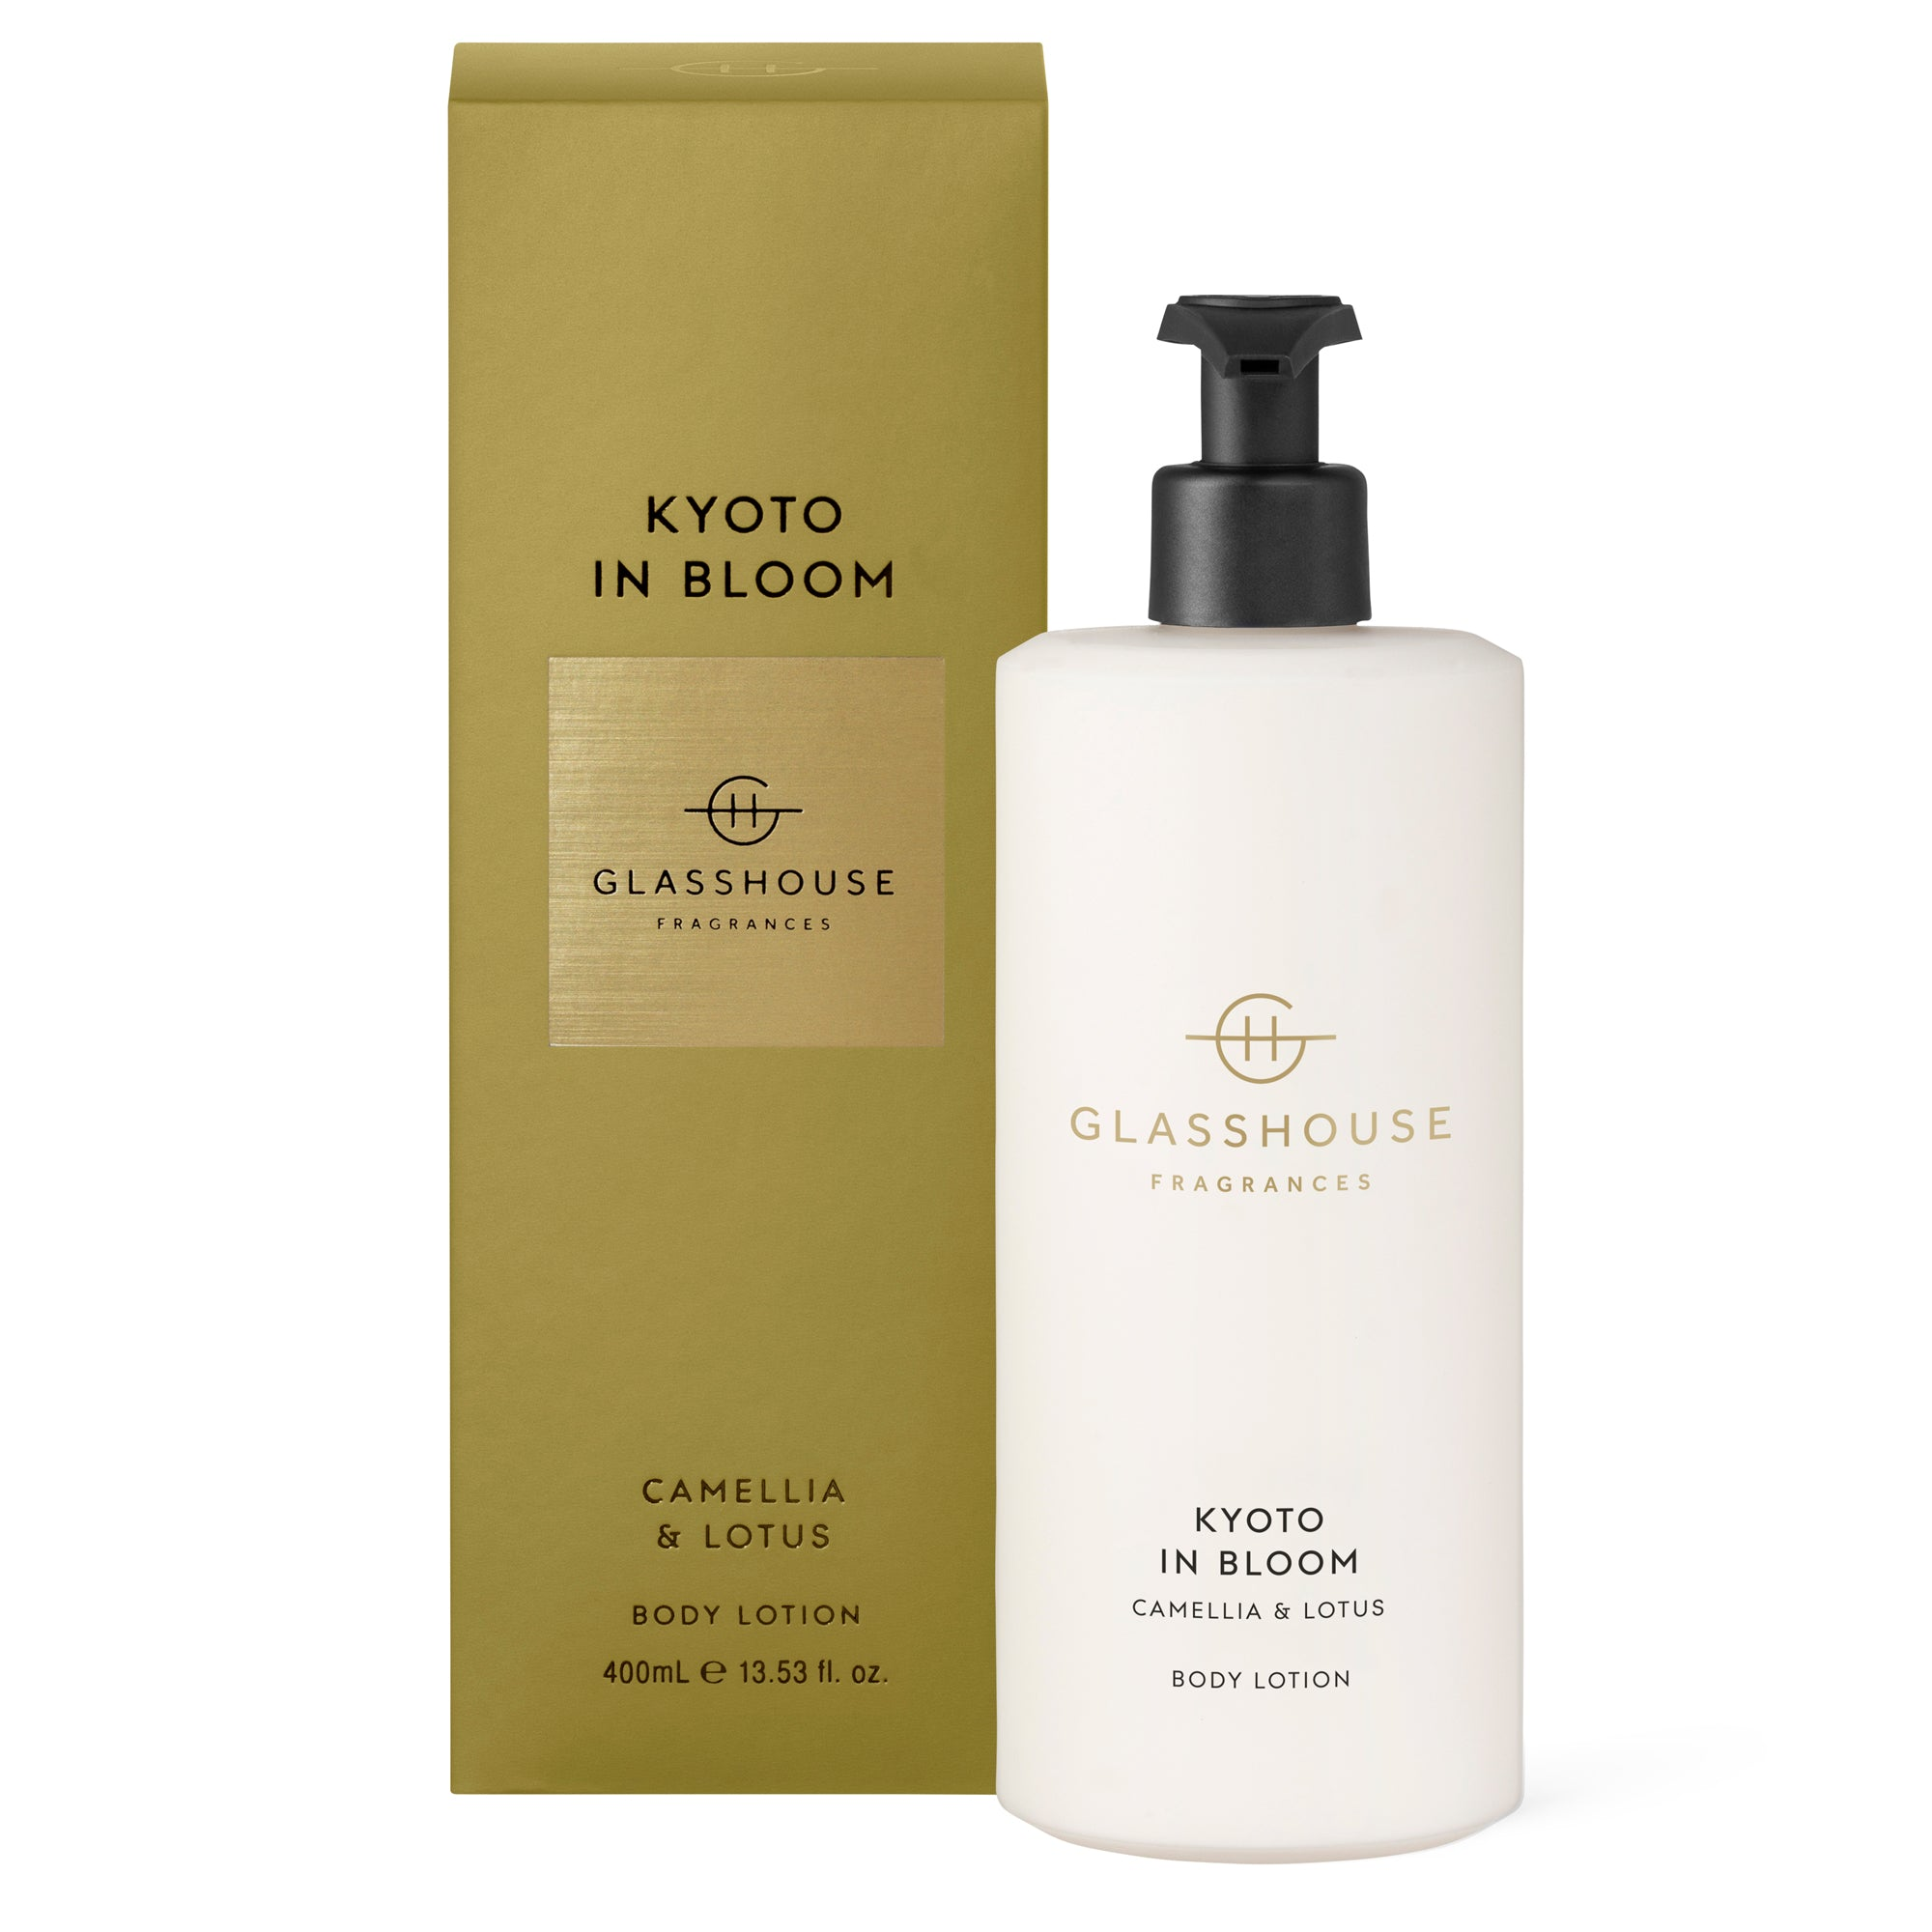 GLASSHOUSE -  KYOTO IN BLOOM Body Lotion